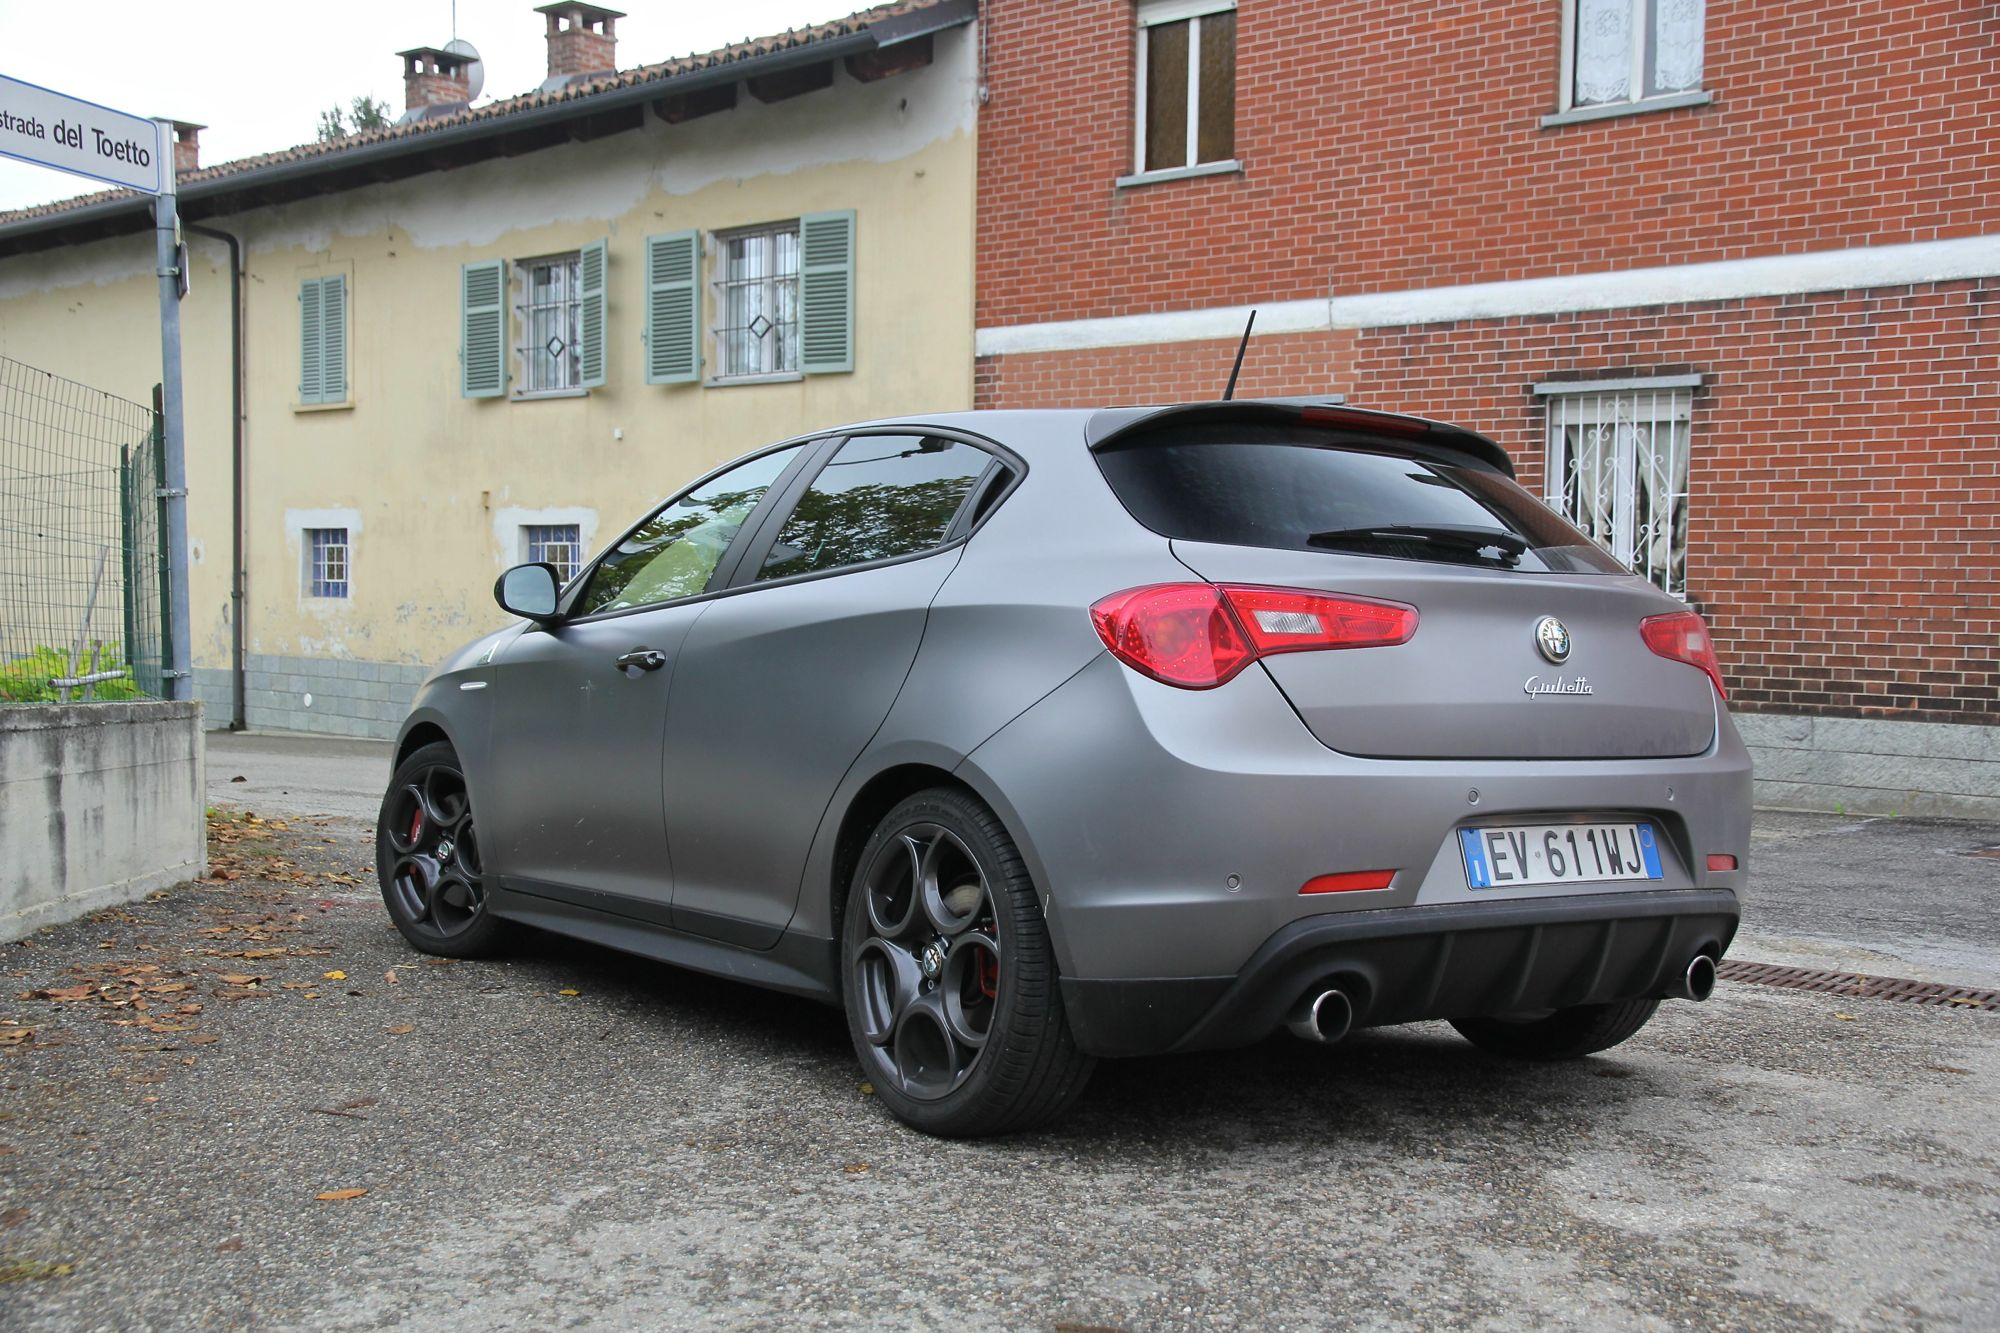 X Trail New Model >> 2015 Alfa Romeo Giulietta Quadrifoglio Verde Review : first drive - photos | CarAdvice